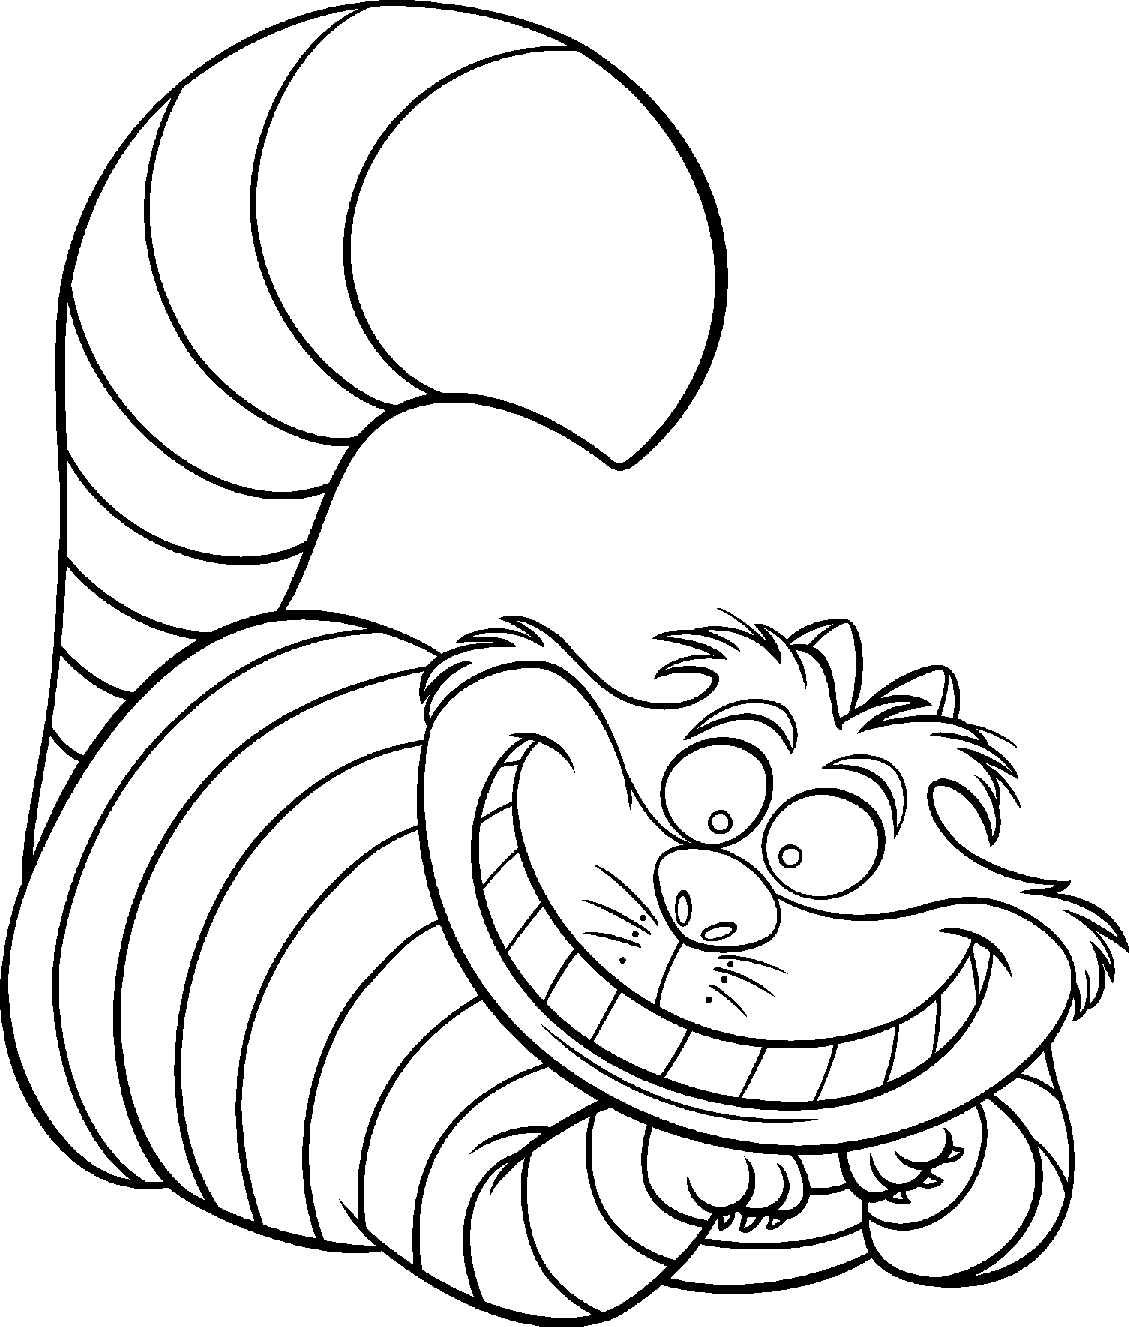 funny pictures to color free printable funny coloring pages for kids funny color pictures to